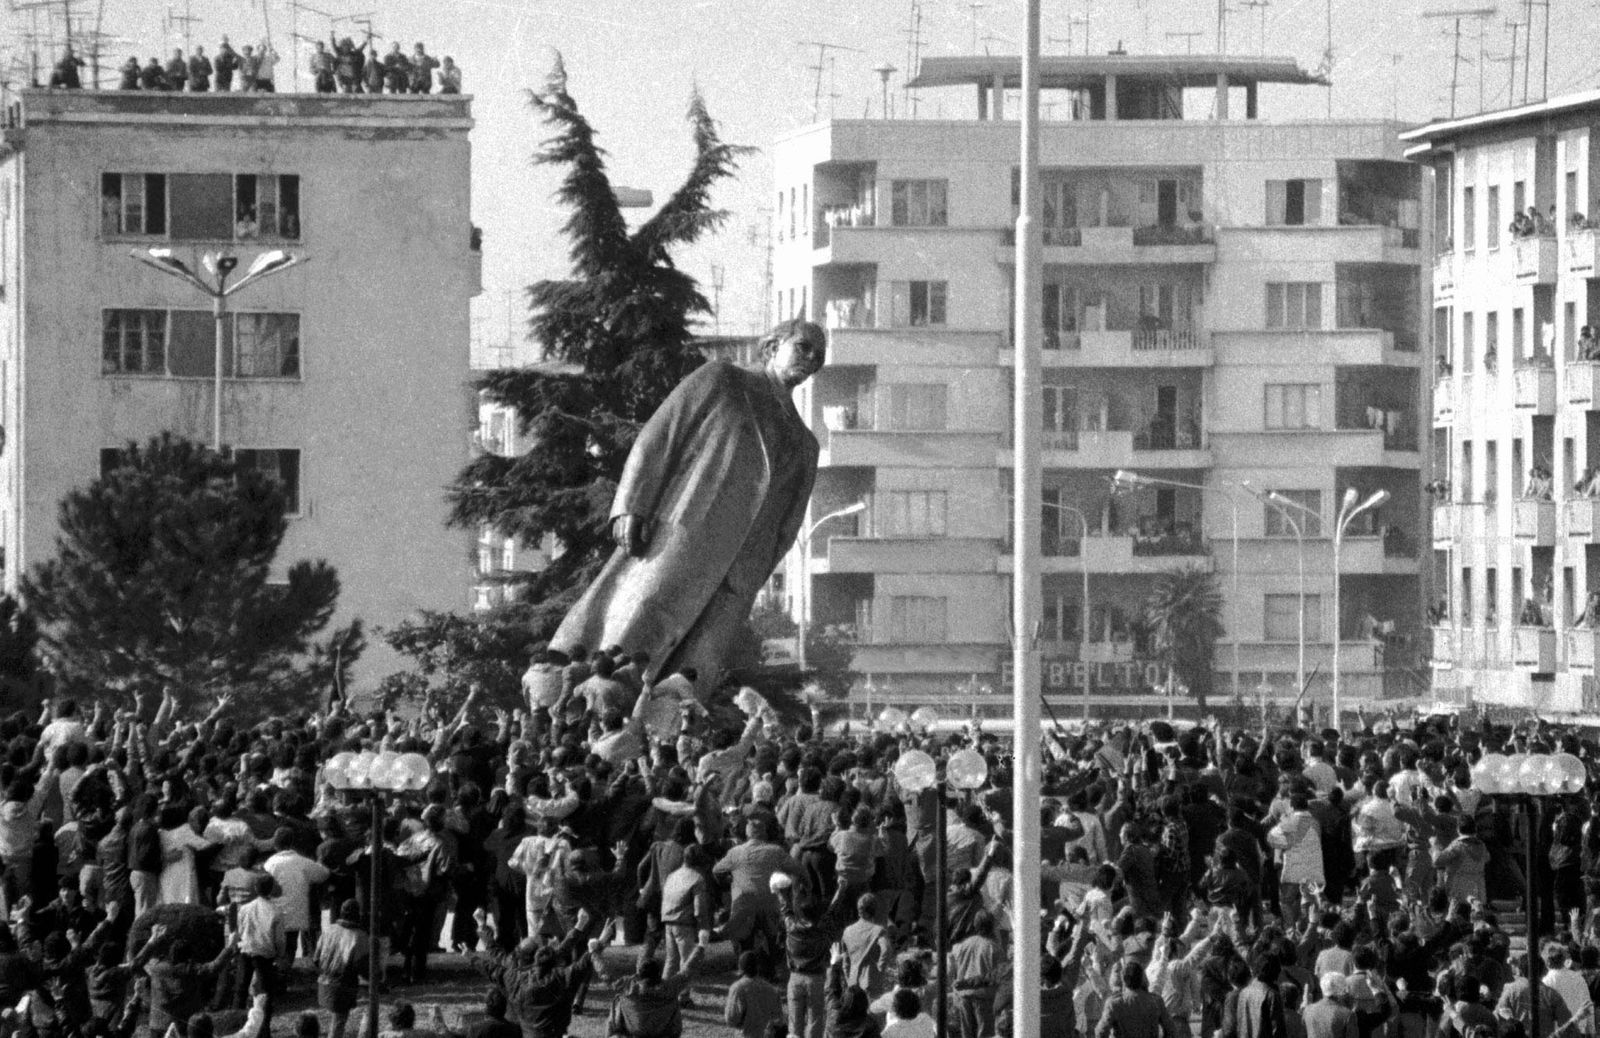 ALBANIANS PUSH OVER THE STATUTE OF DICTATOR HOXHA IN 1991.